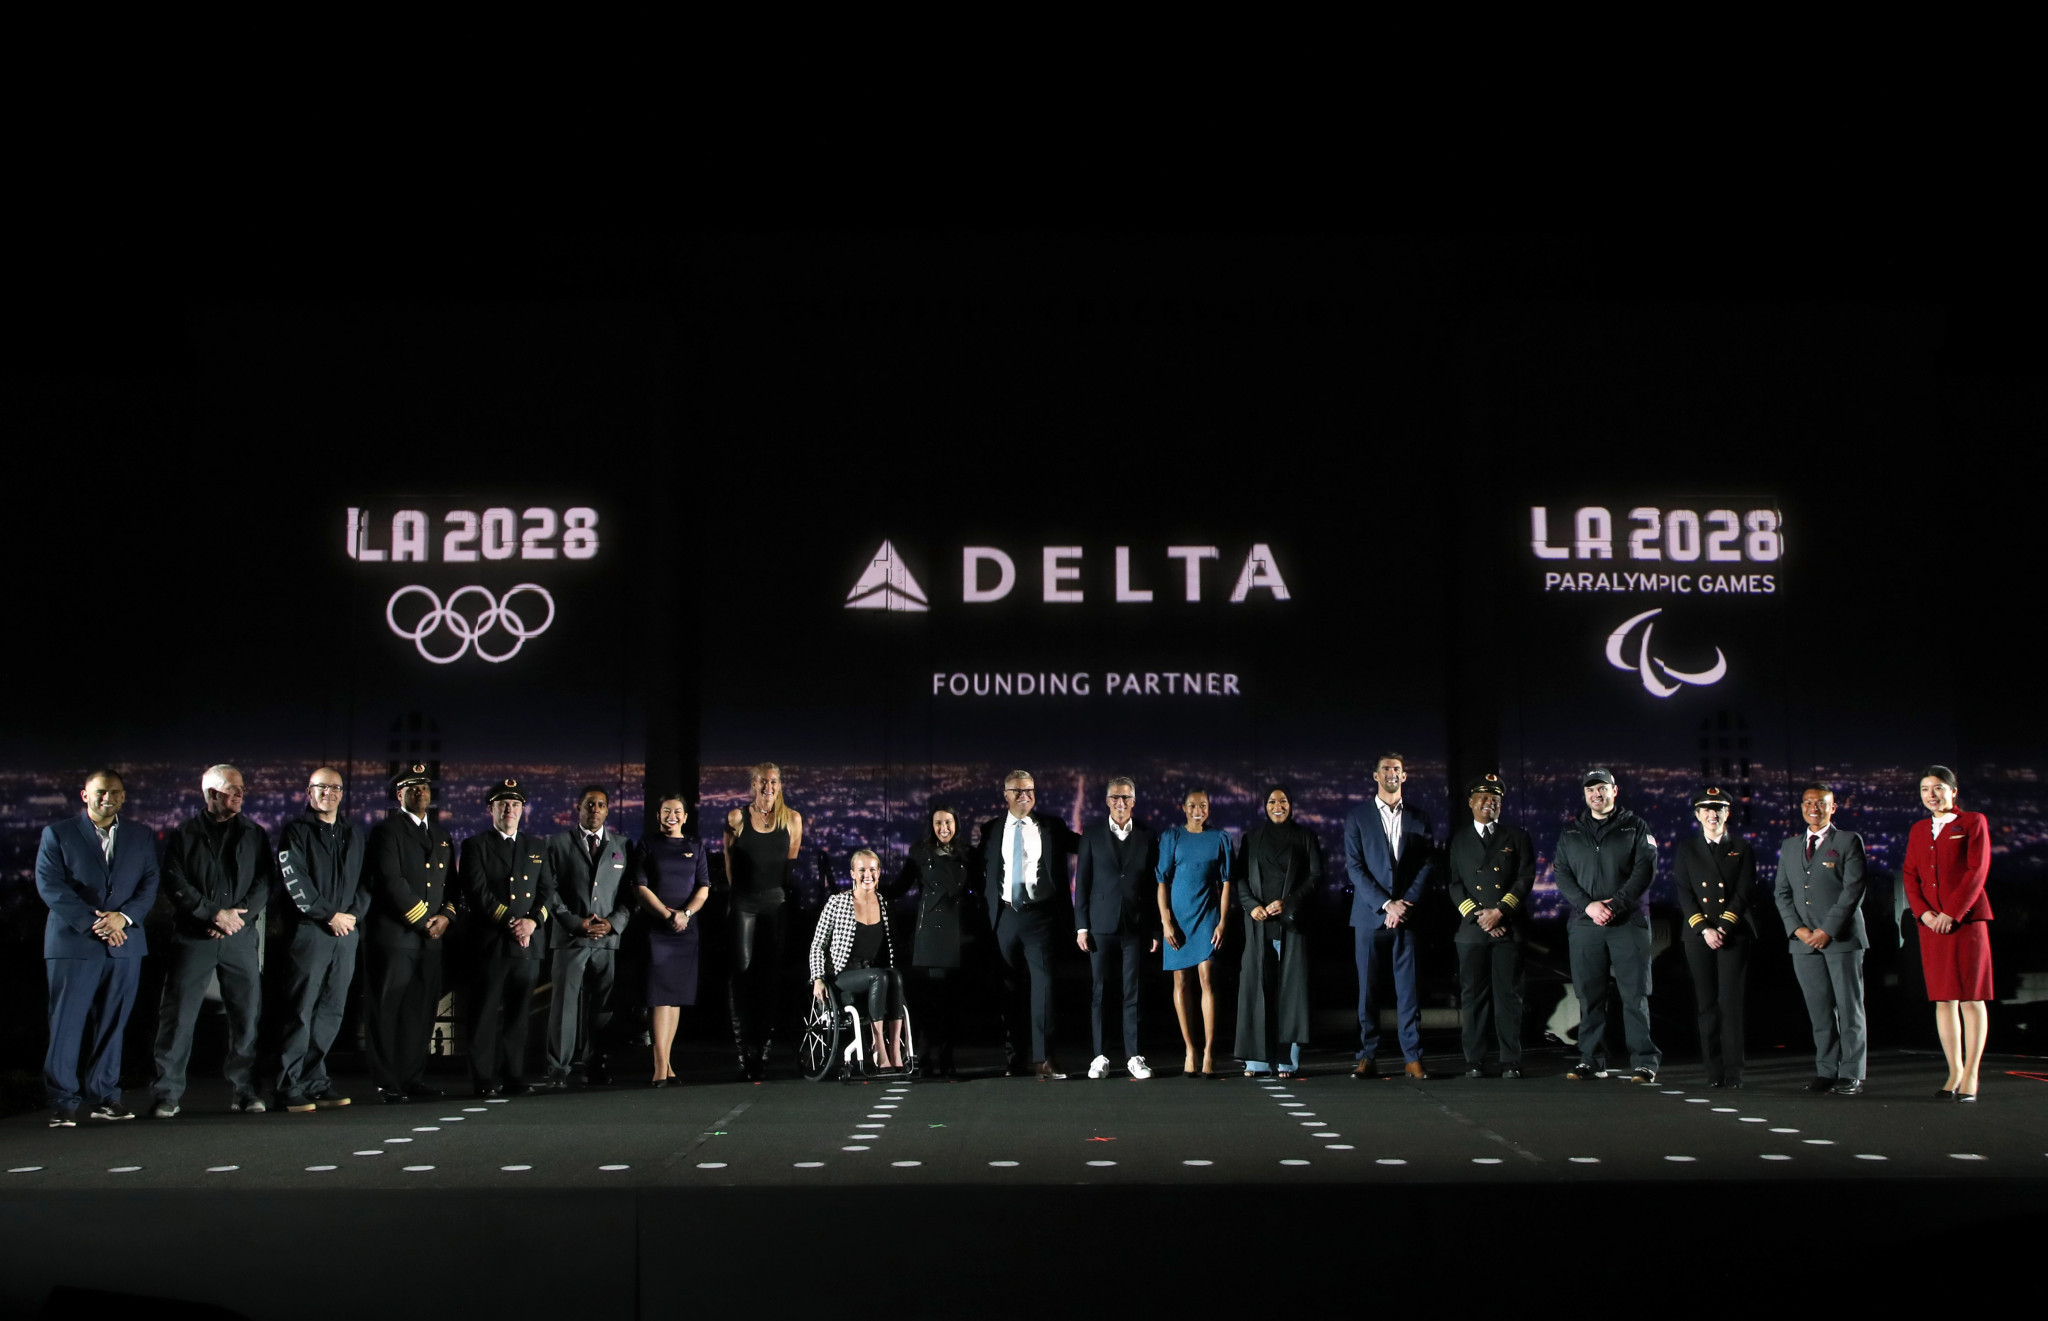 Delta Air Lines has signed-up as the inaugural founding partner of the Los Angeles 2028 Olympics and Paralympics ©Getty Images